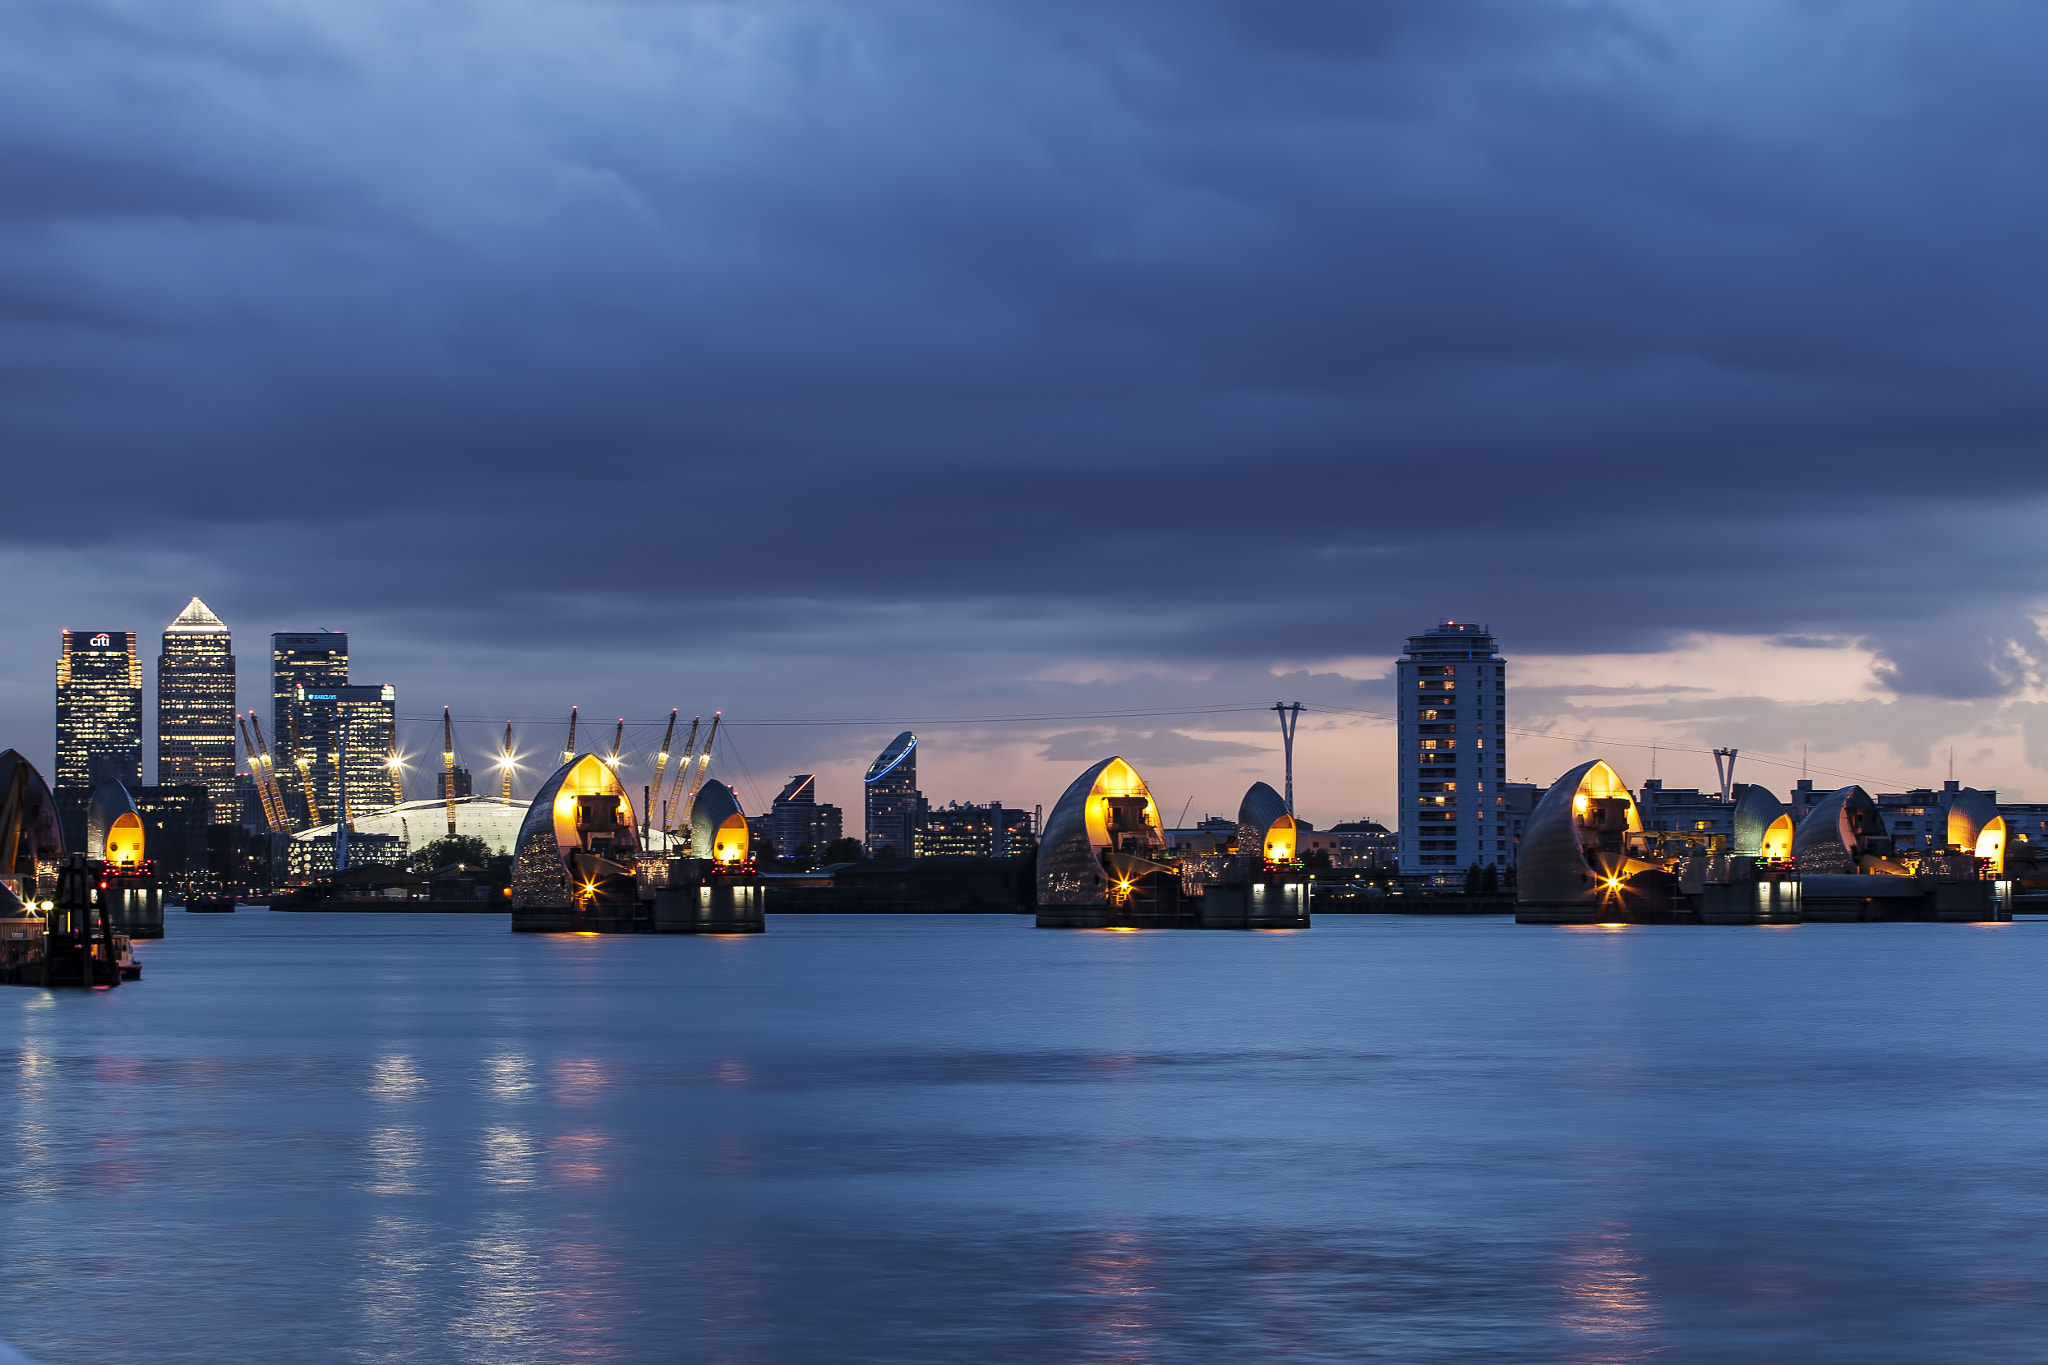 Photograph Thames Barrier by Dean Bedding on 500px